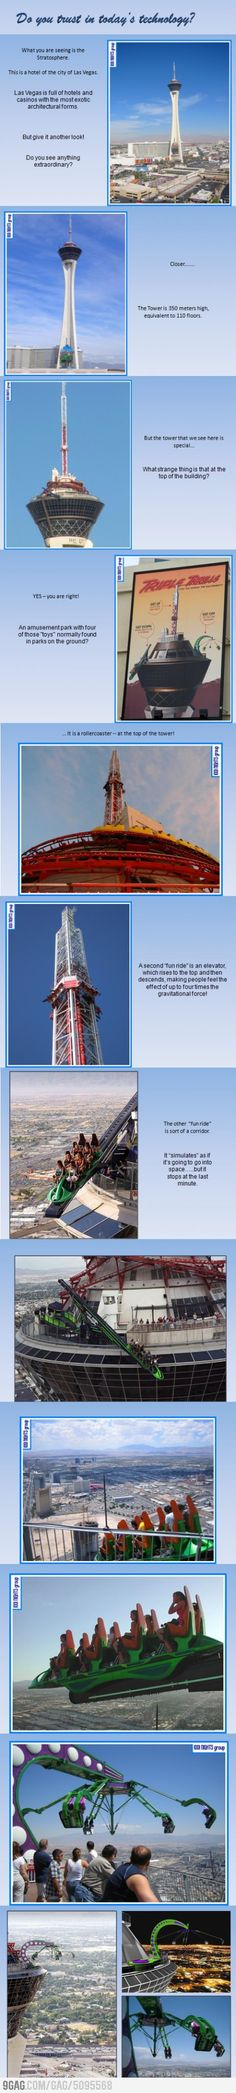 A tower in Vegas